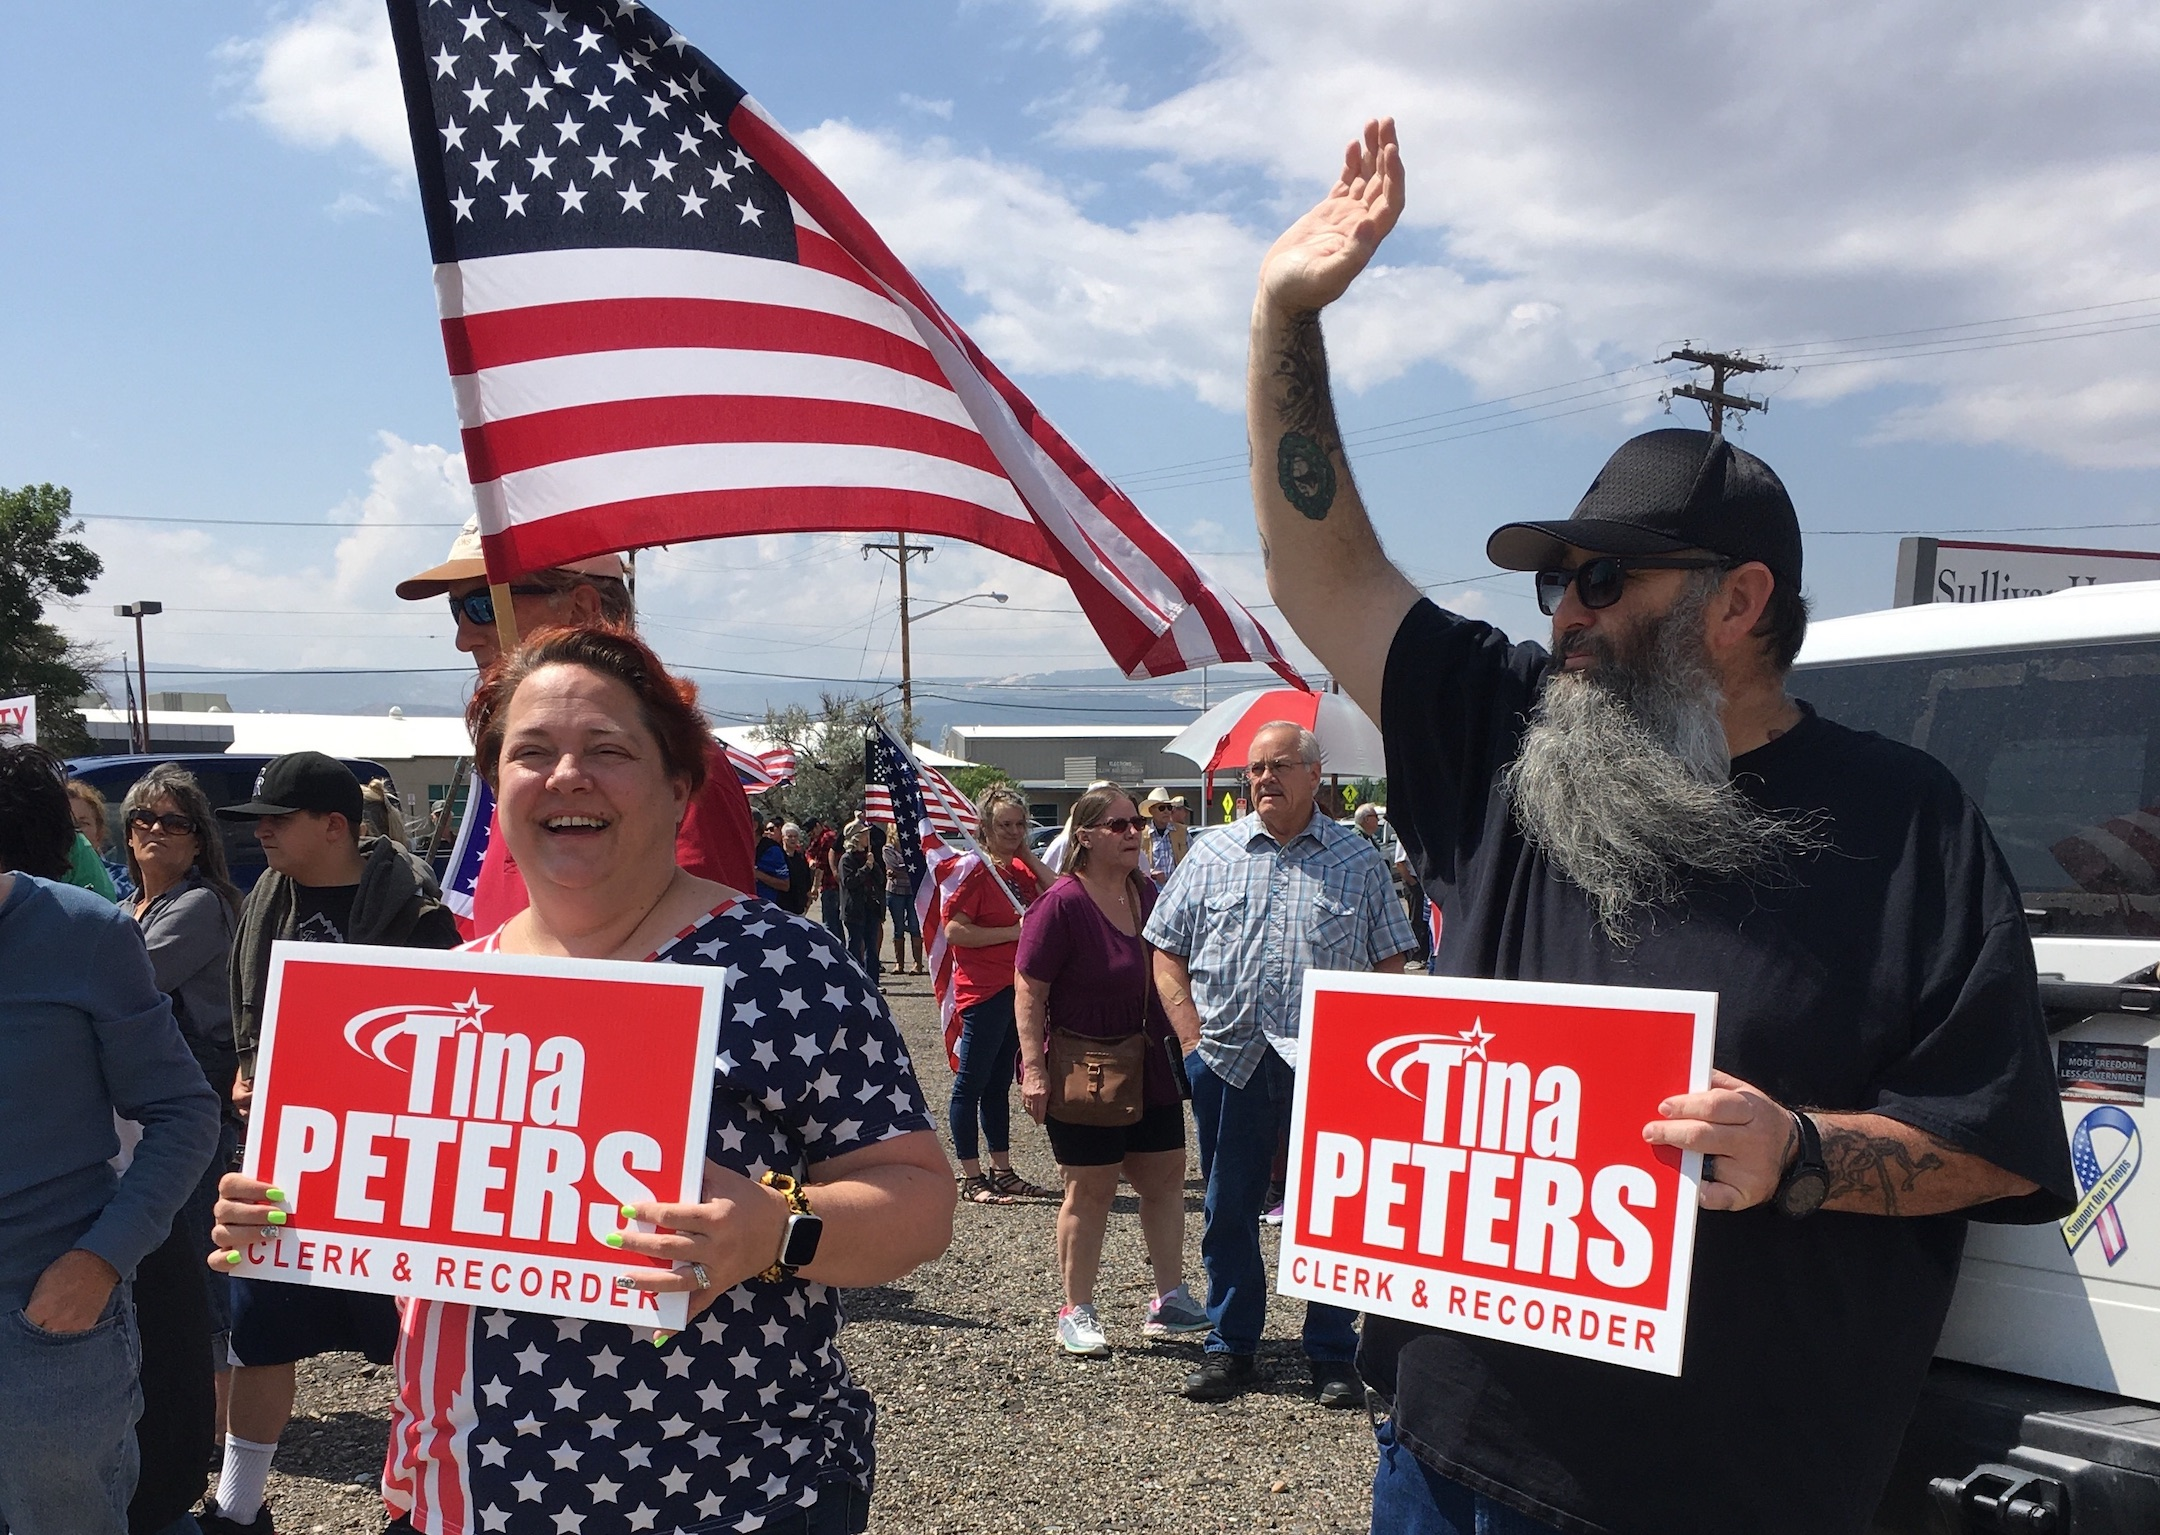 Tina Peters supporters rally in Grand Junction